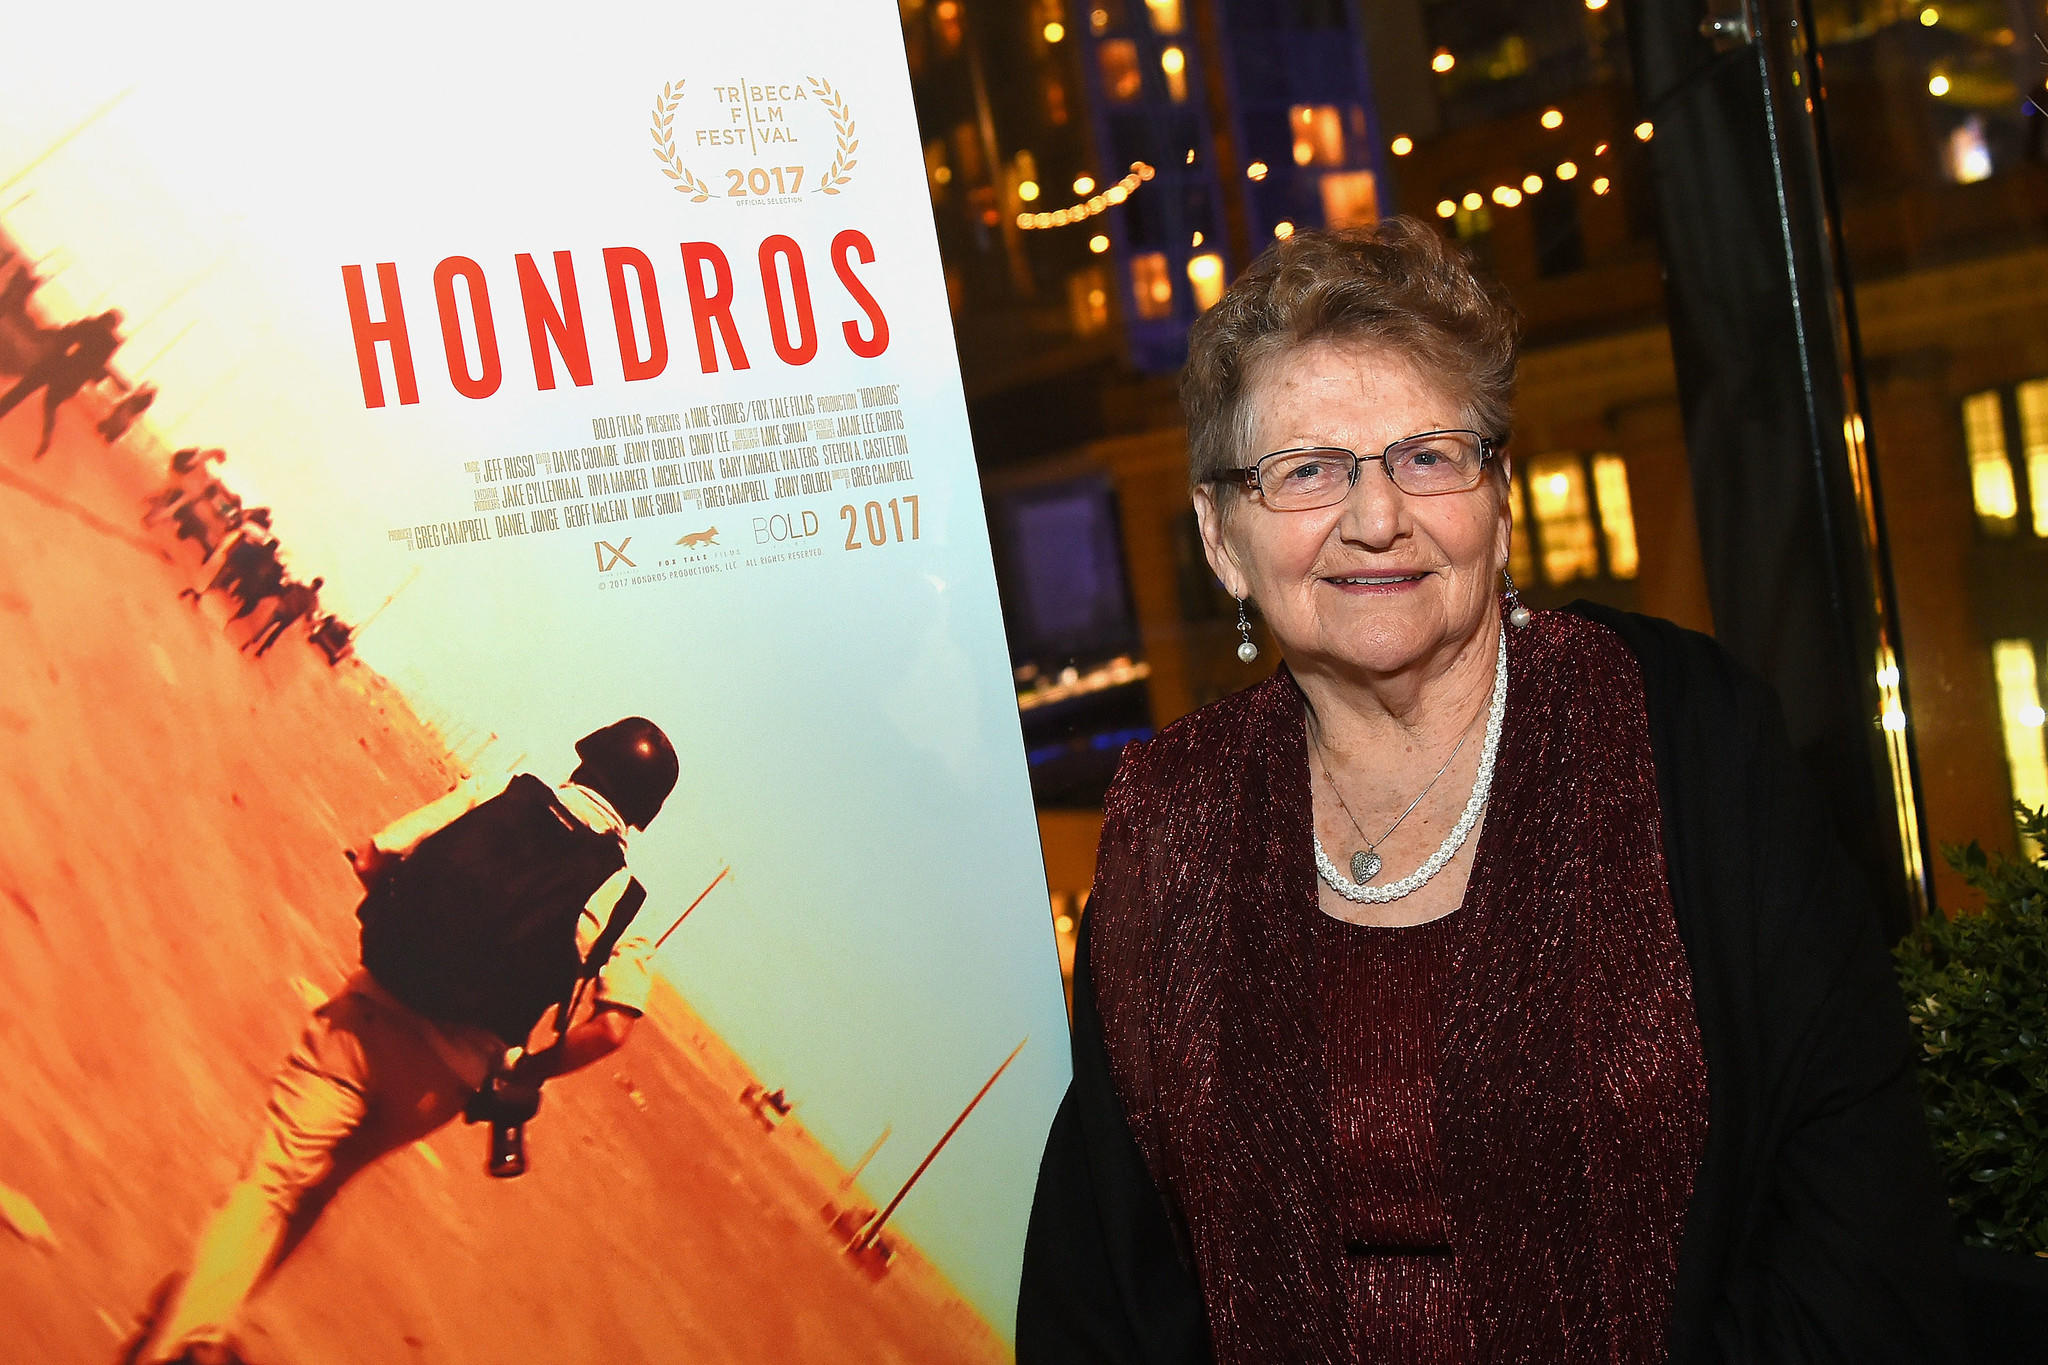 """Hondros,"" a documentary about the life of late Pulitzer Prize-winning photographer Chris Hondros, received the Audience Award for documentary at Tribeca. Pictured: Inge Hondros. (Ben Gabbe / Getty Images for Hondros)"